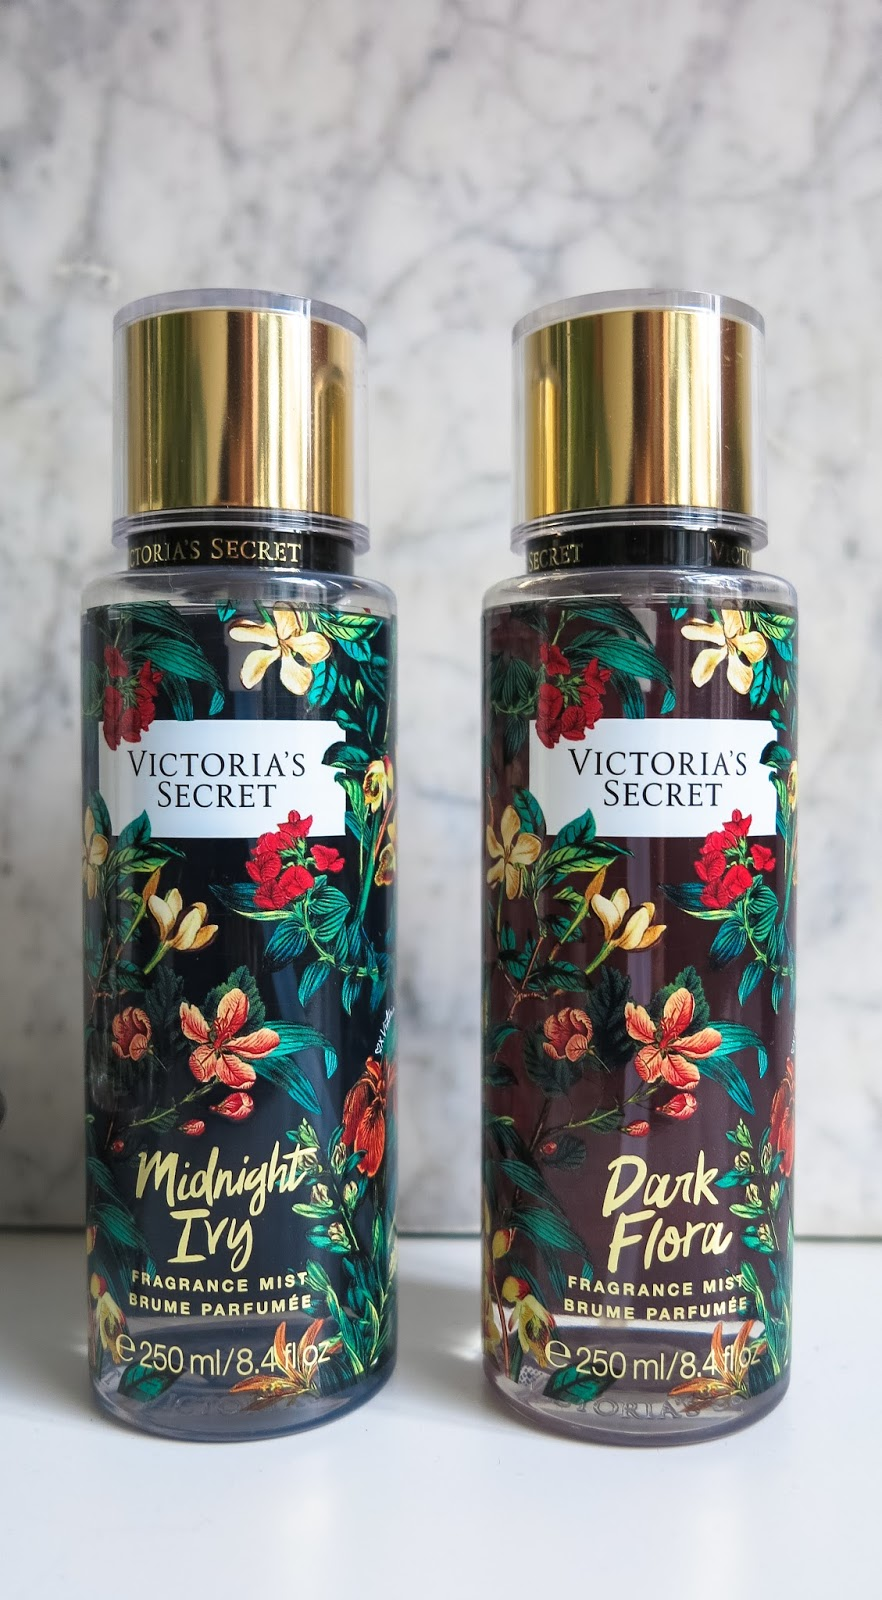 VICTORIAS SECRET Fragrance Mist Dark Flora Midnight Ivy